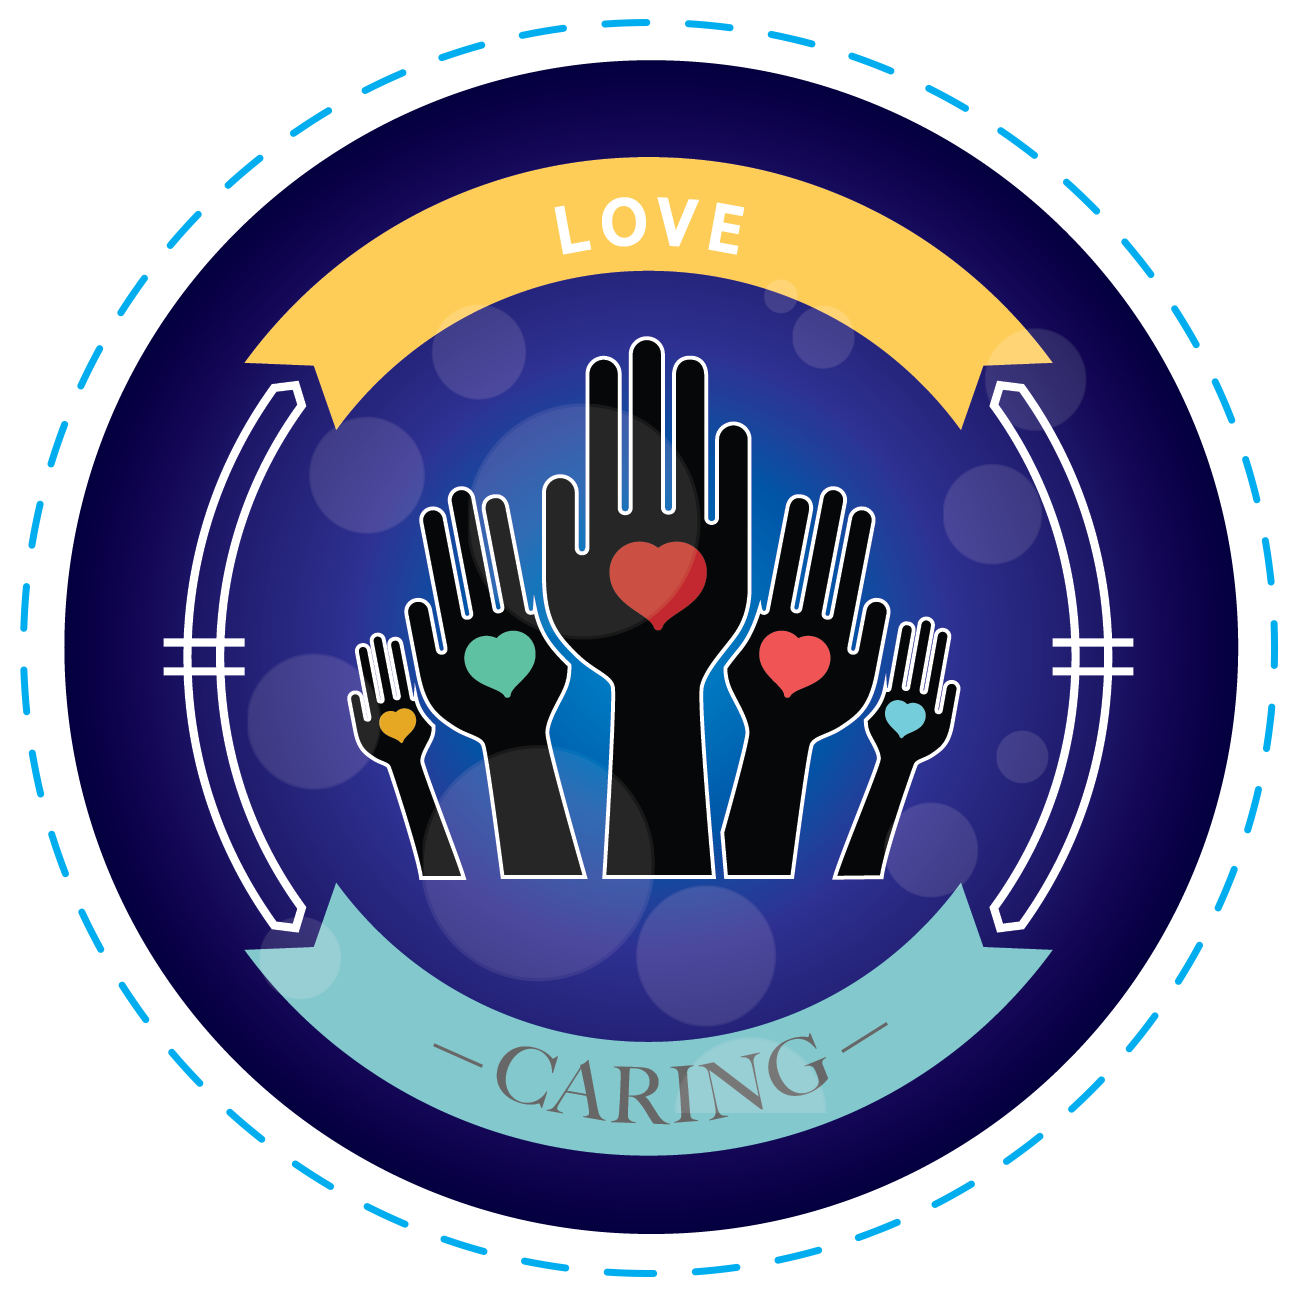 Love & Caring